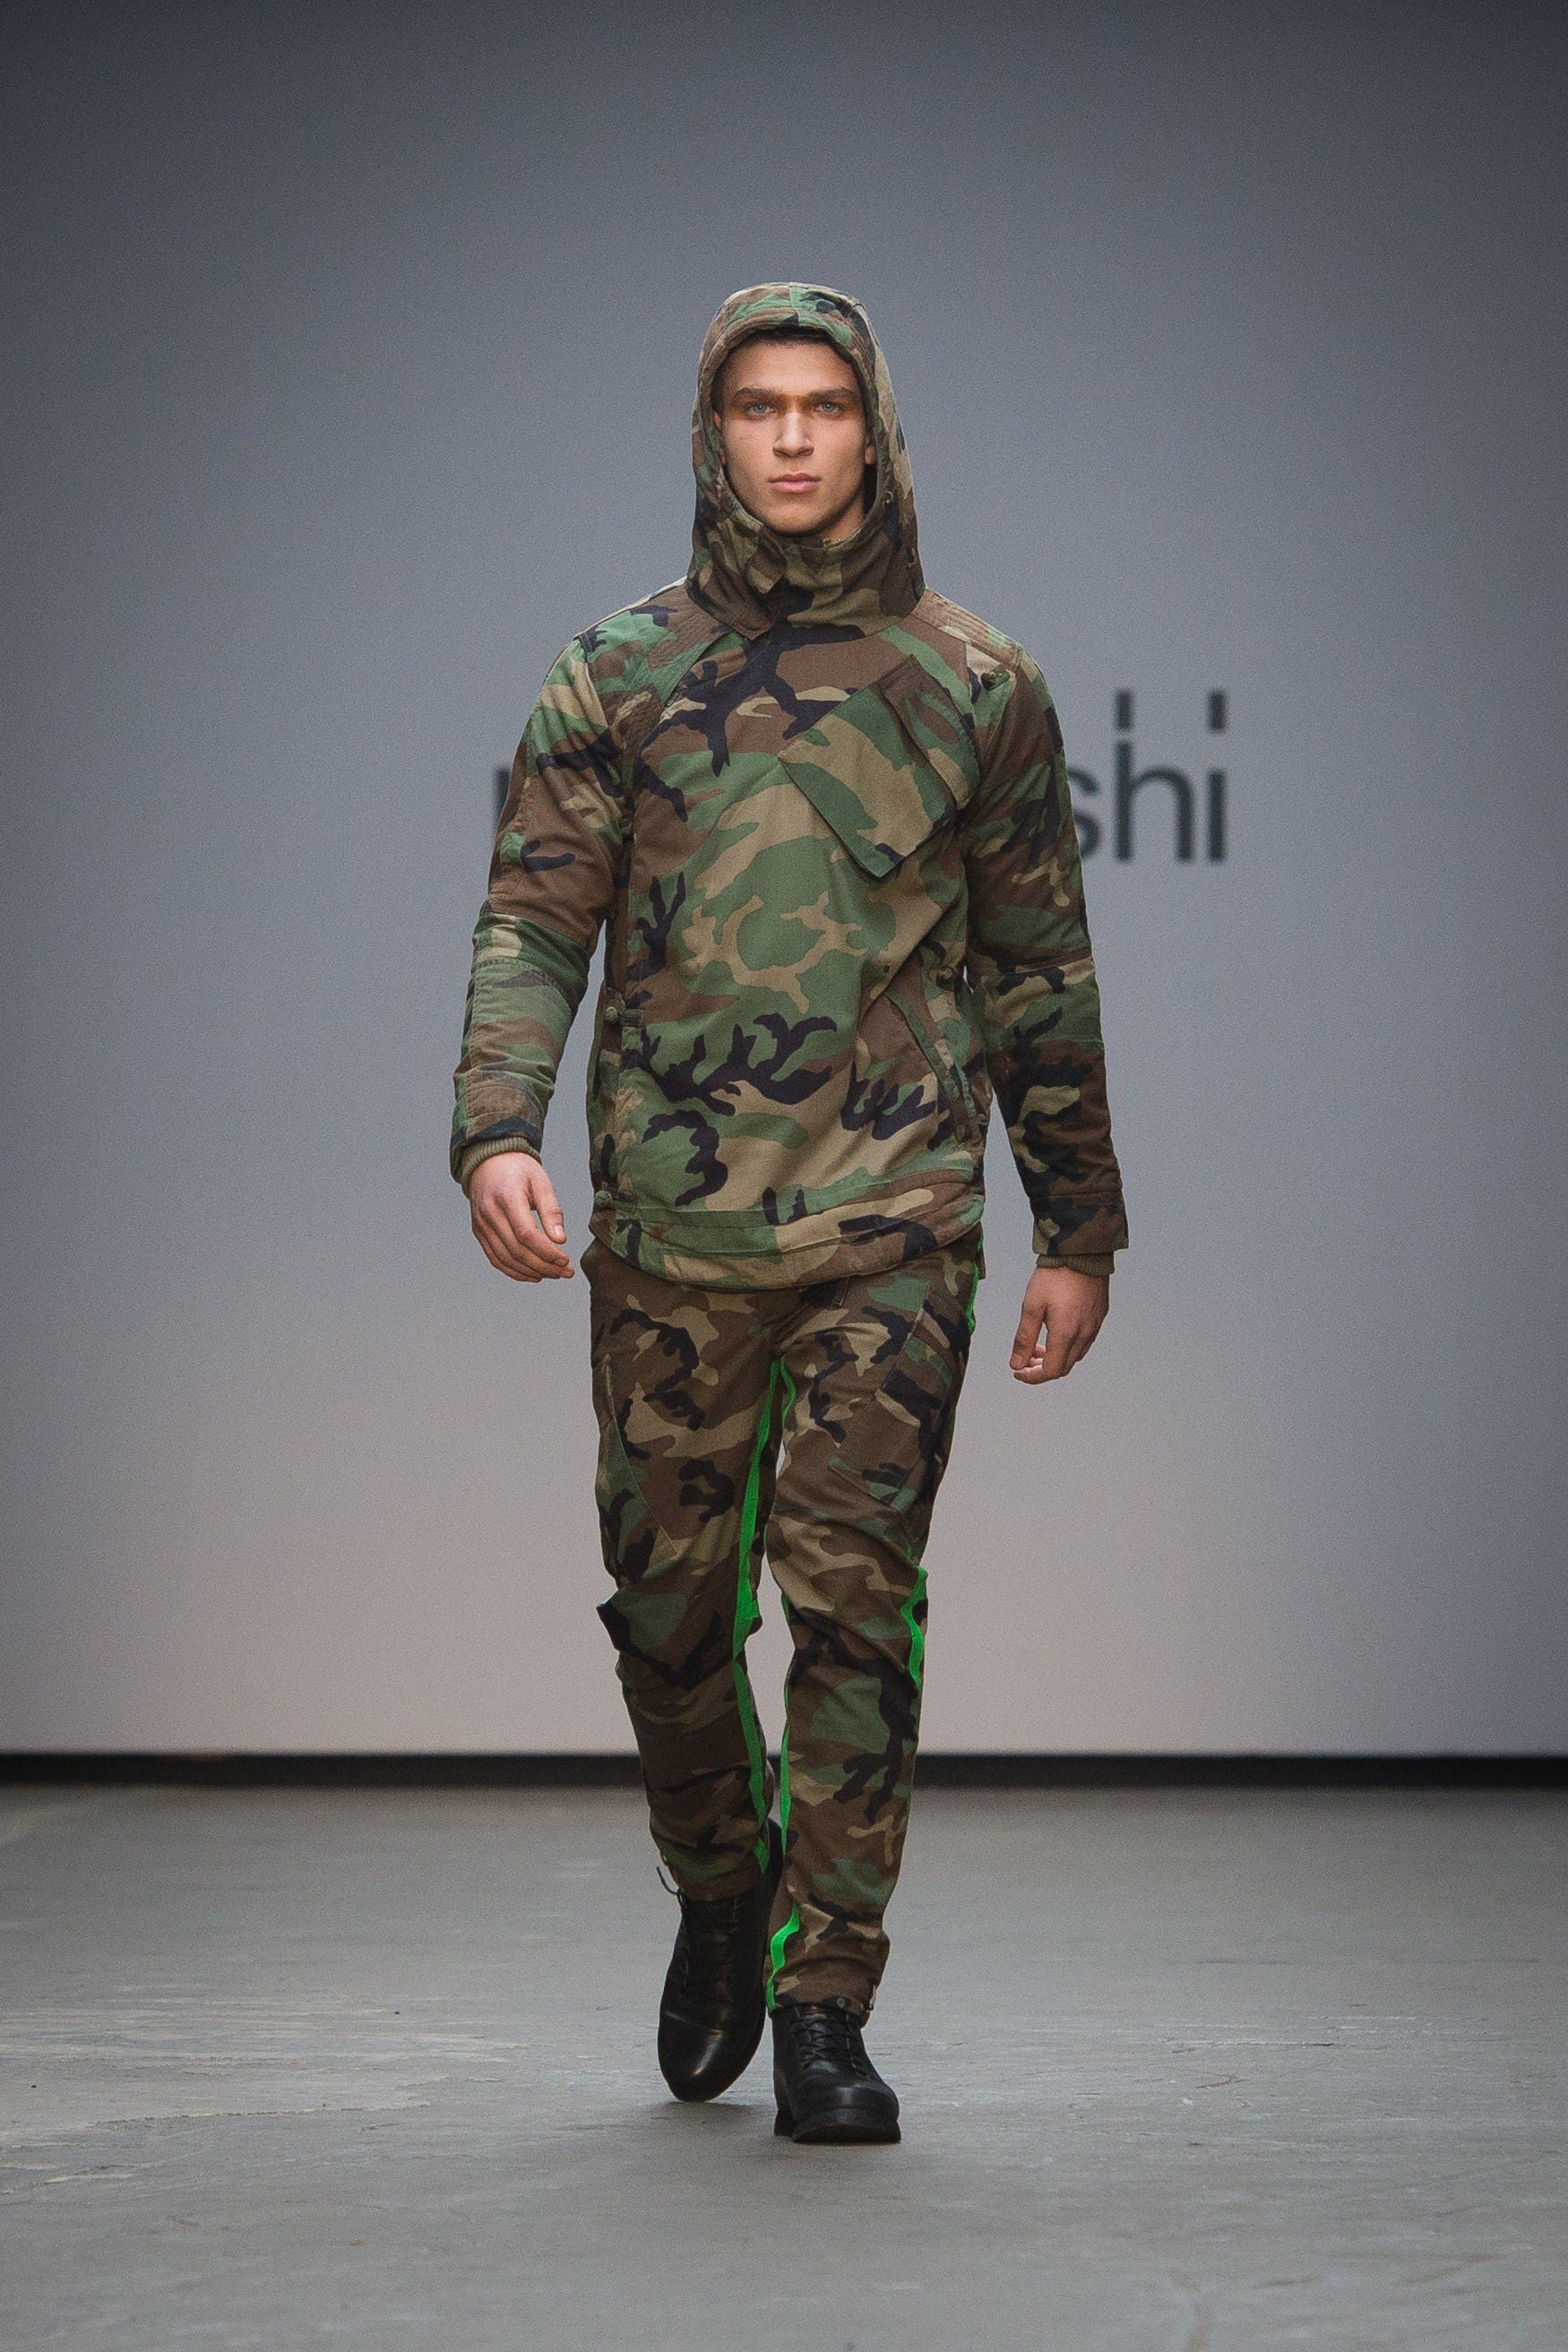 A model presents a creation by Maharishi on the second day of the Autumn/Winter 2015 London Collections: Men fashion event in London on January 10, 2015. (AFP)